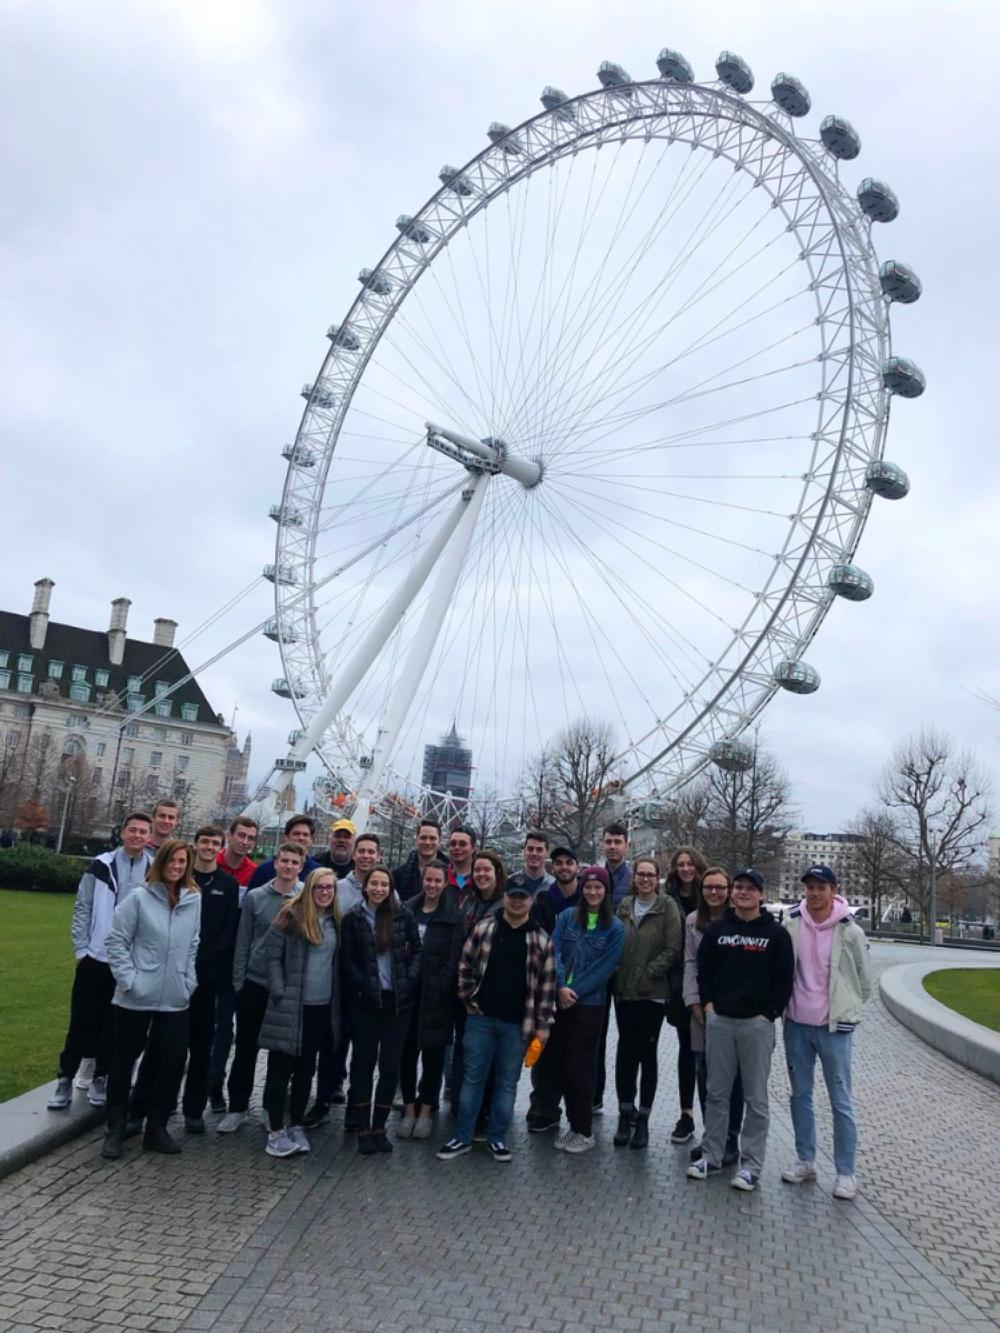 LCB London group ferris wheel